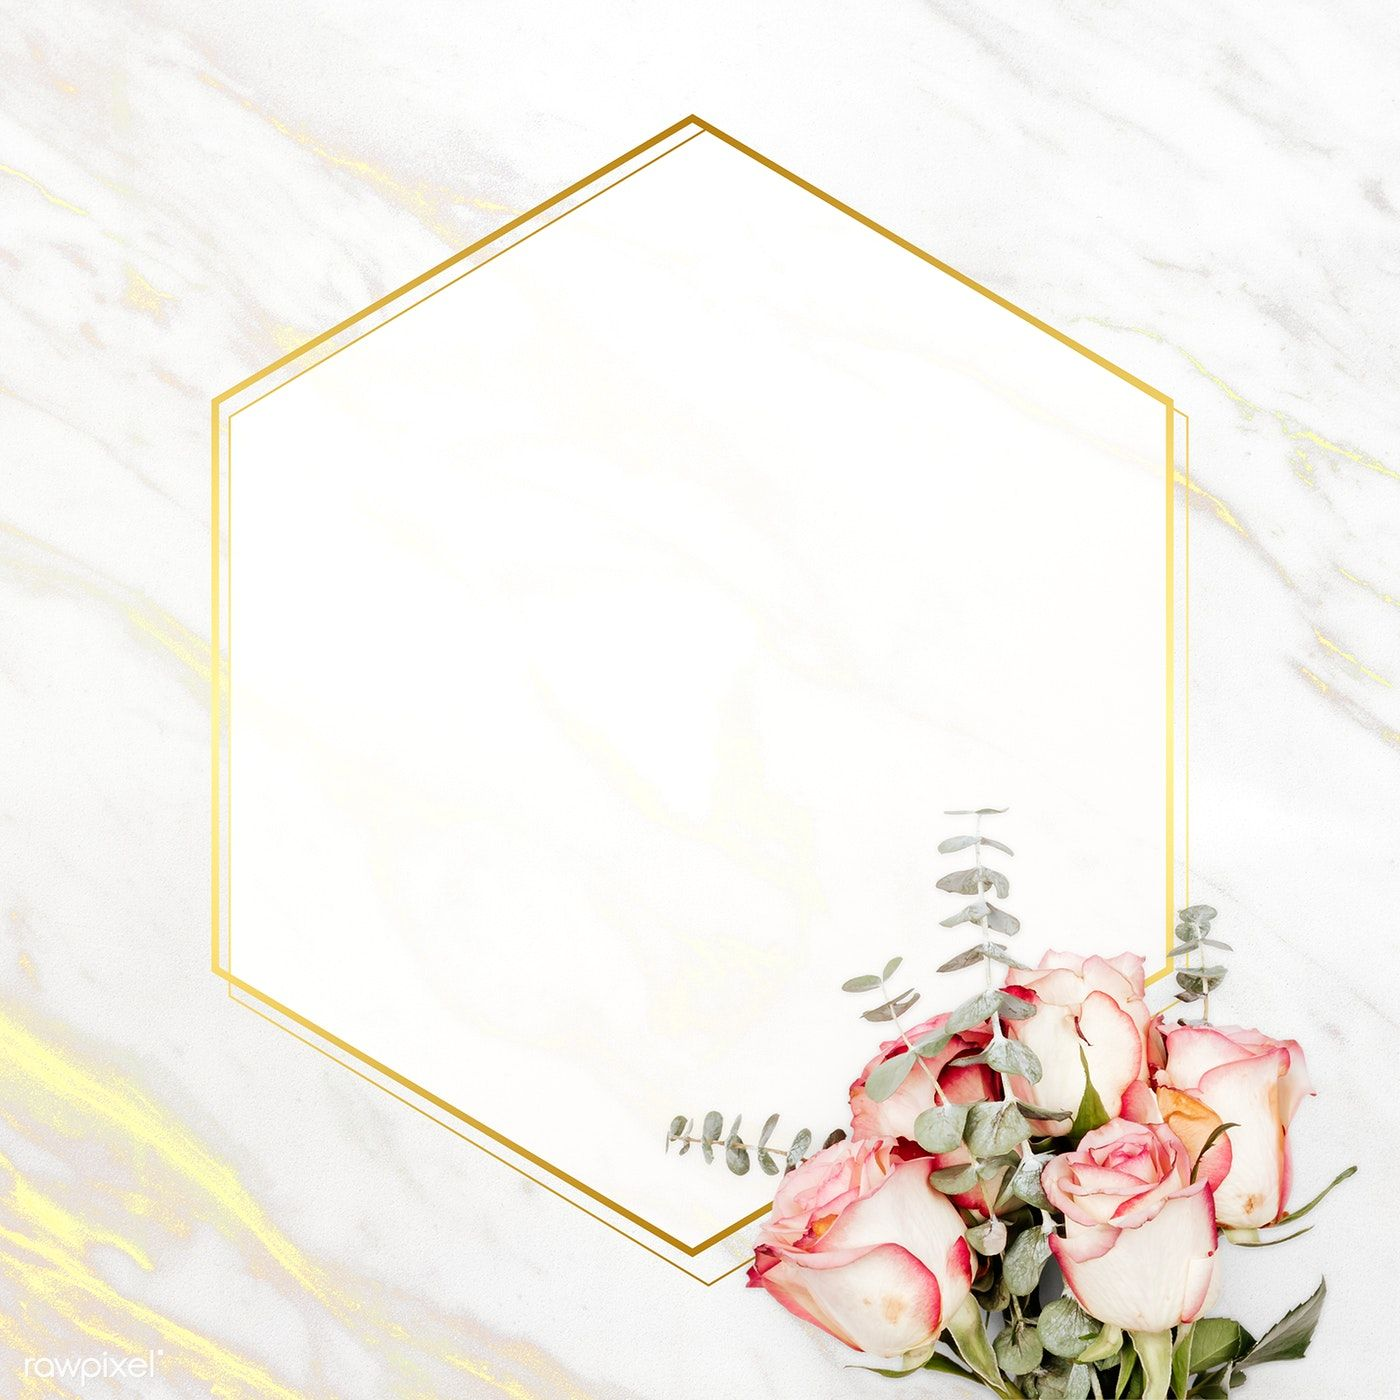 Download Premium Psd Of Floral Golden Marble Hexagon Frame 1212829 Vector Background Pattern Marble Frame Flower Frame